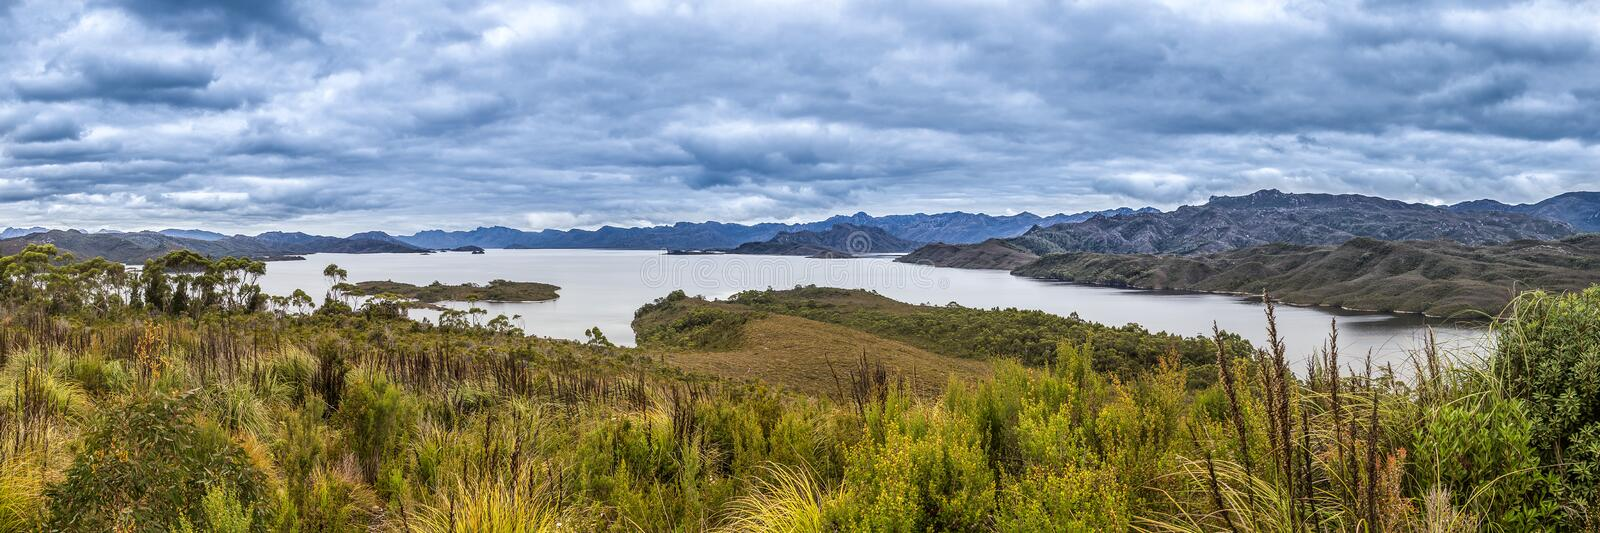 Lake Pedder royalty free stock image